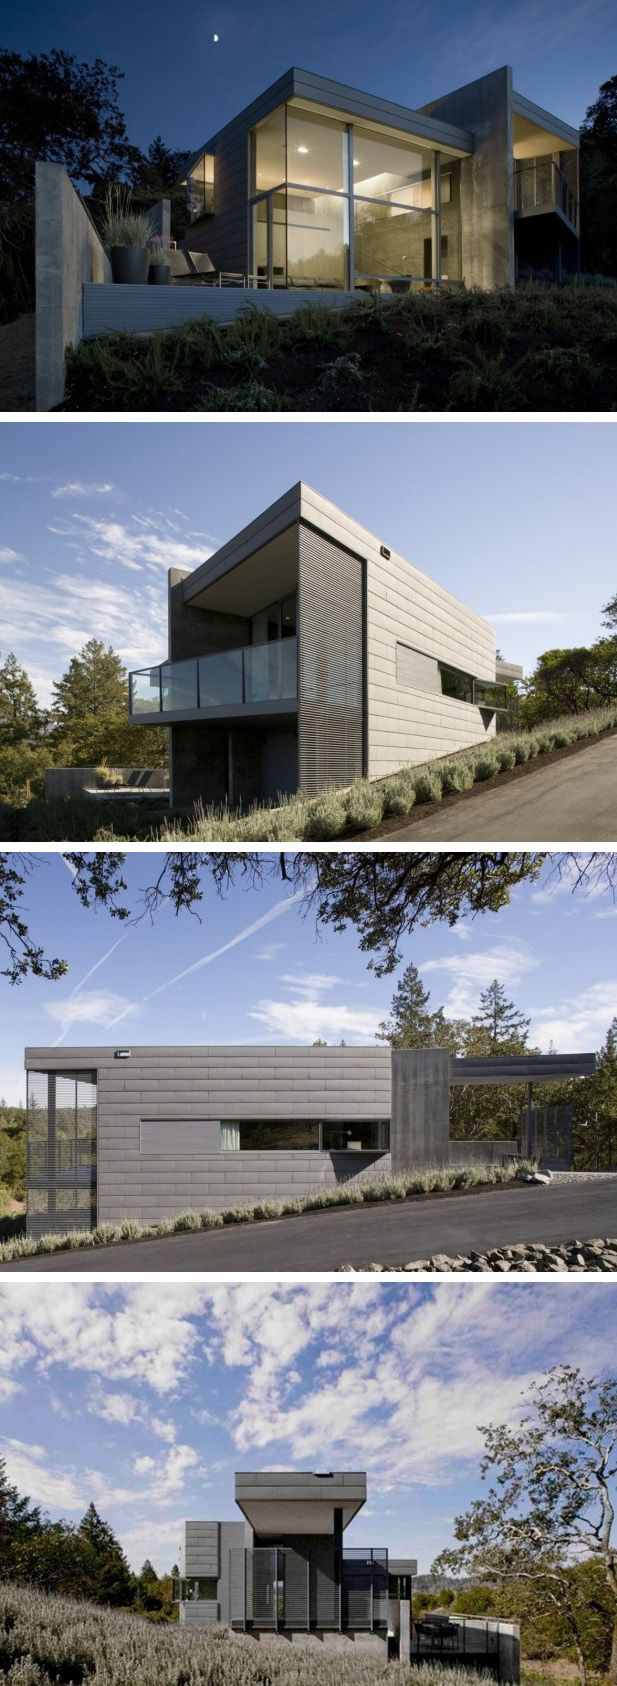 Cooper joseph studio designed this house in the dry creek - Architectural designers near me ...